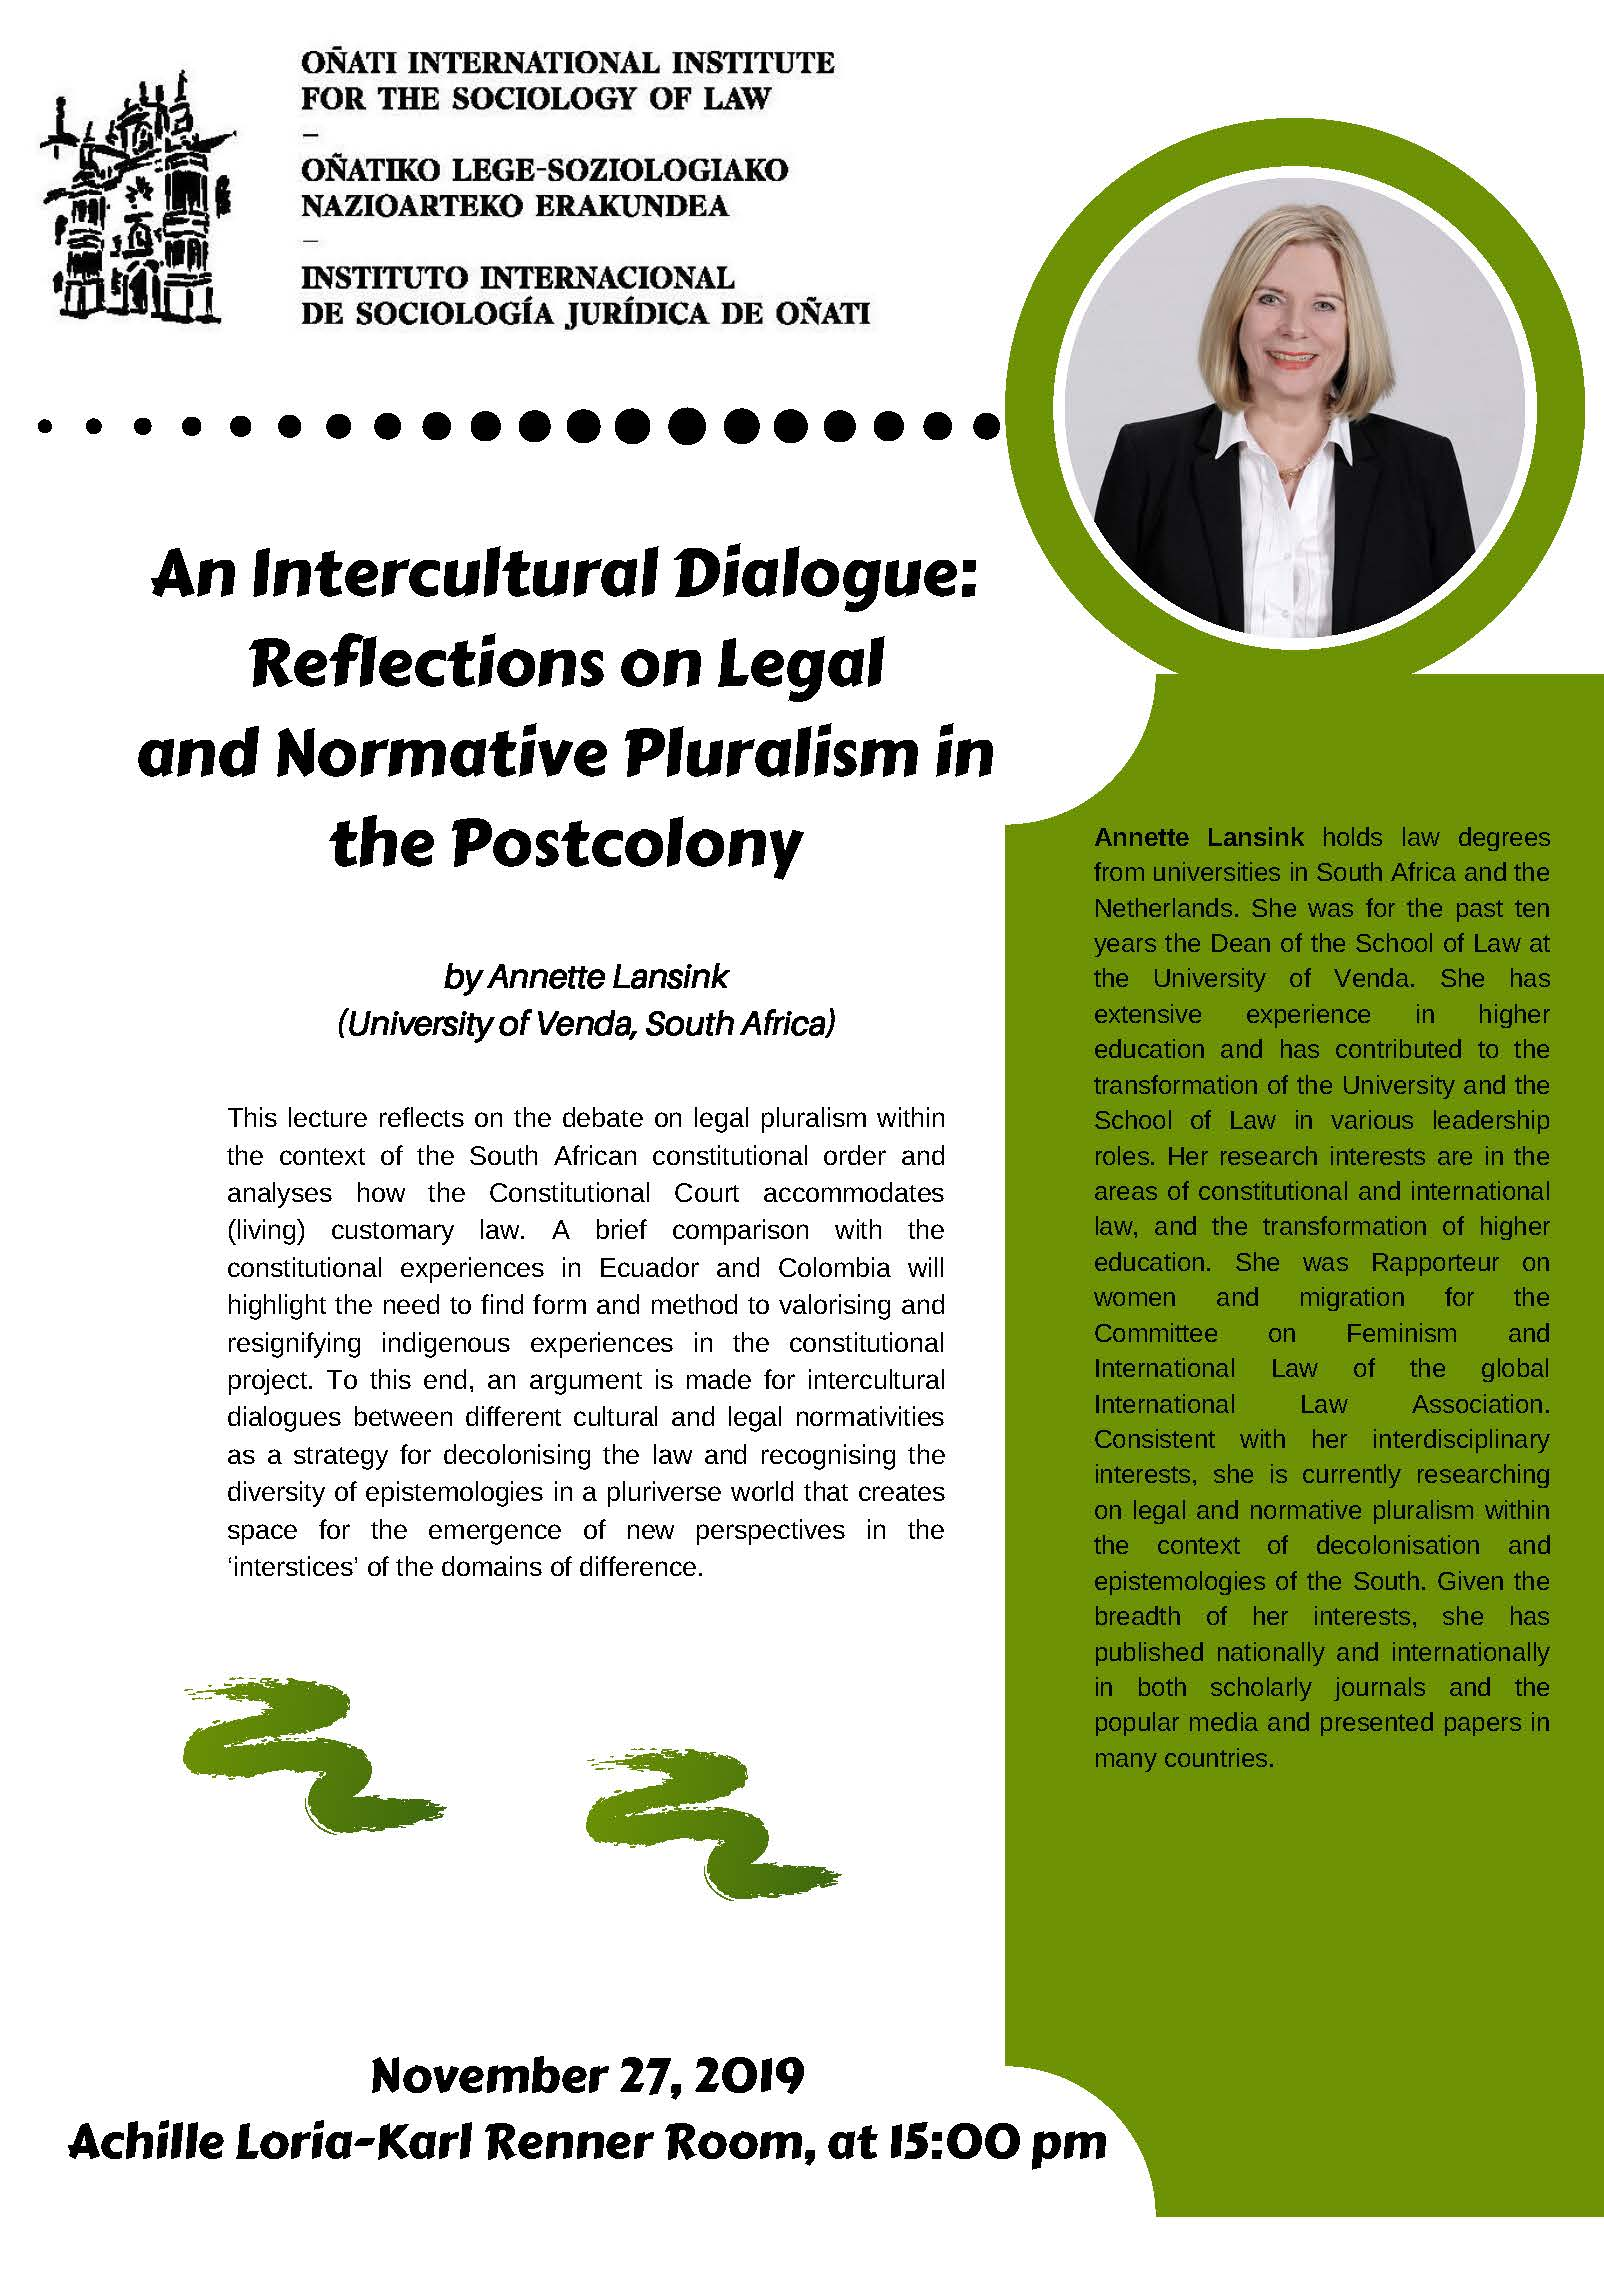 Annette Lansink will give a lecture.